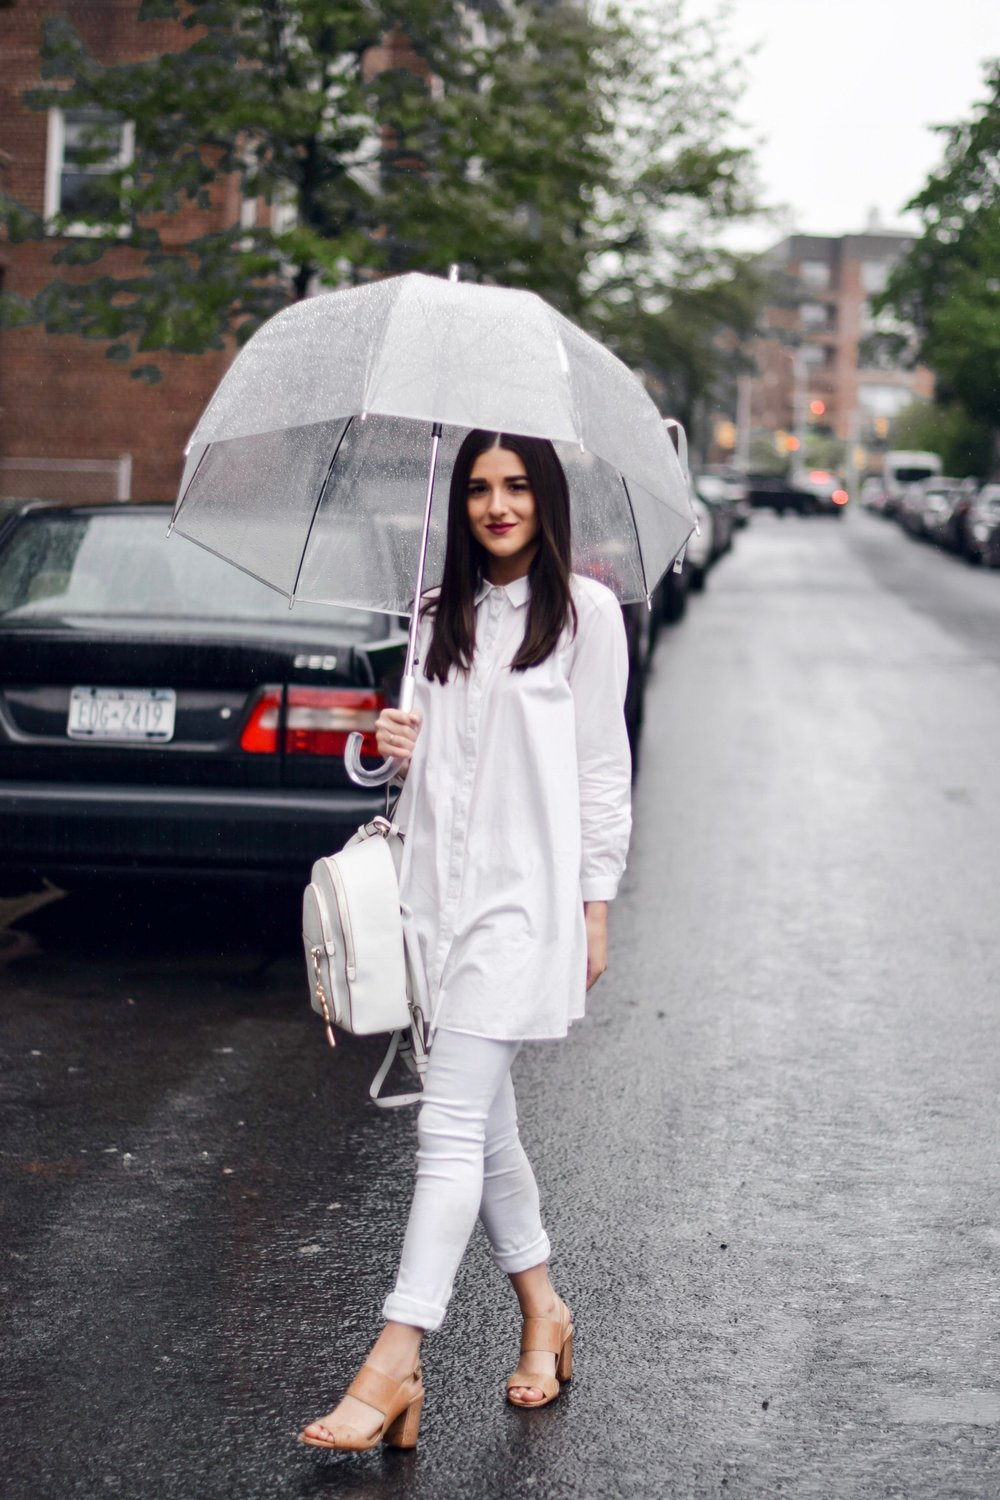 Why I Won't Be Bringing My Camera Or Laptop To Portugal Or Spain All White Look Esther Santer Fashion Blog NYC Street Style Blogger Outfit OOTD Trendy Shopping Umbrella Rainy Day Button Down Sandals Heels Zara Pants Straight Hair Girl Women New York.jpg